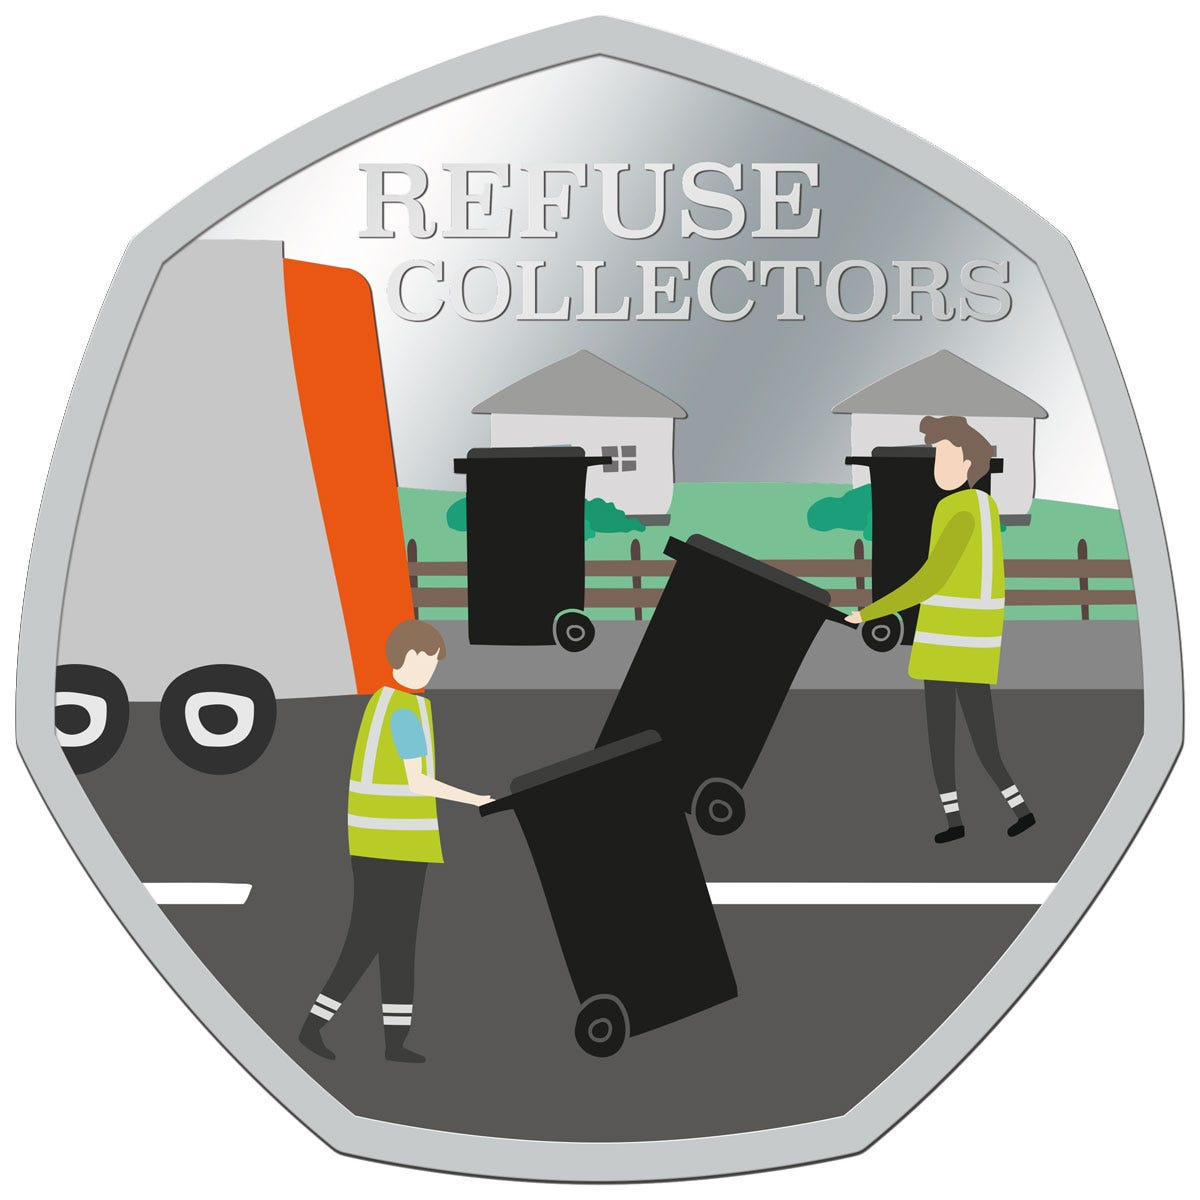 Thank-you Refuse Collectors